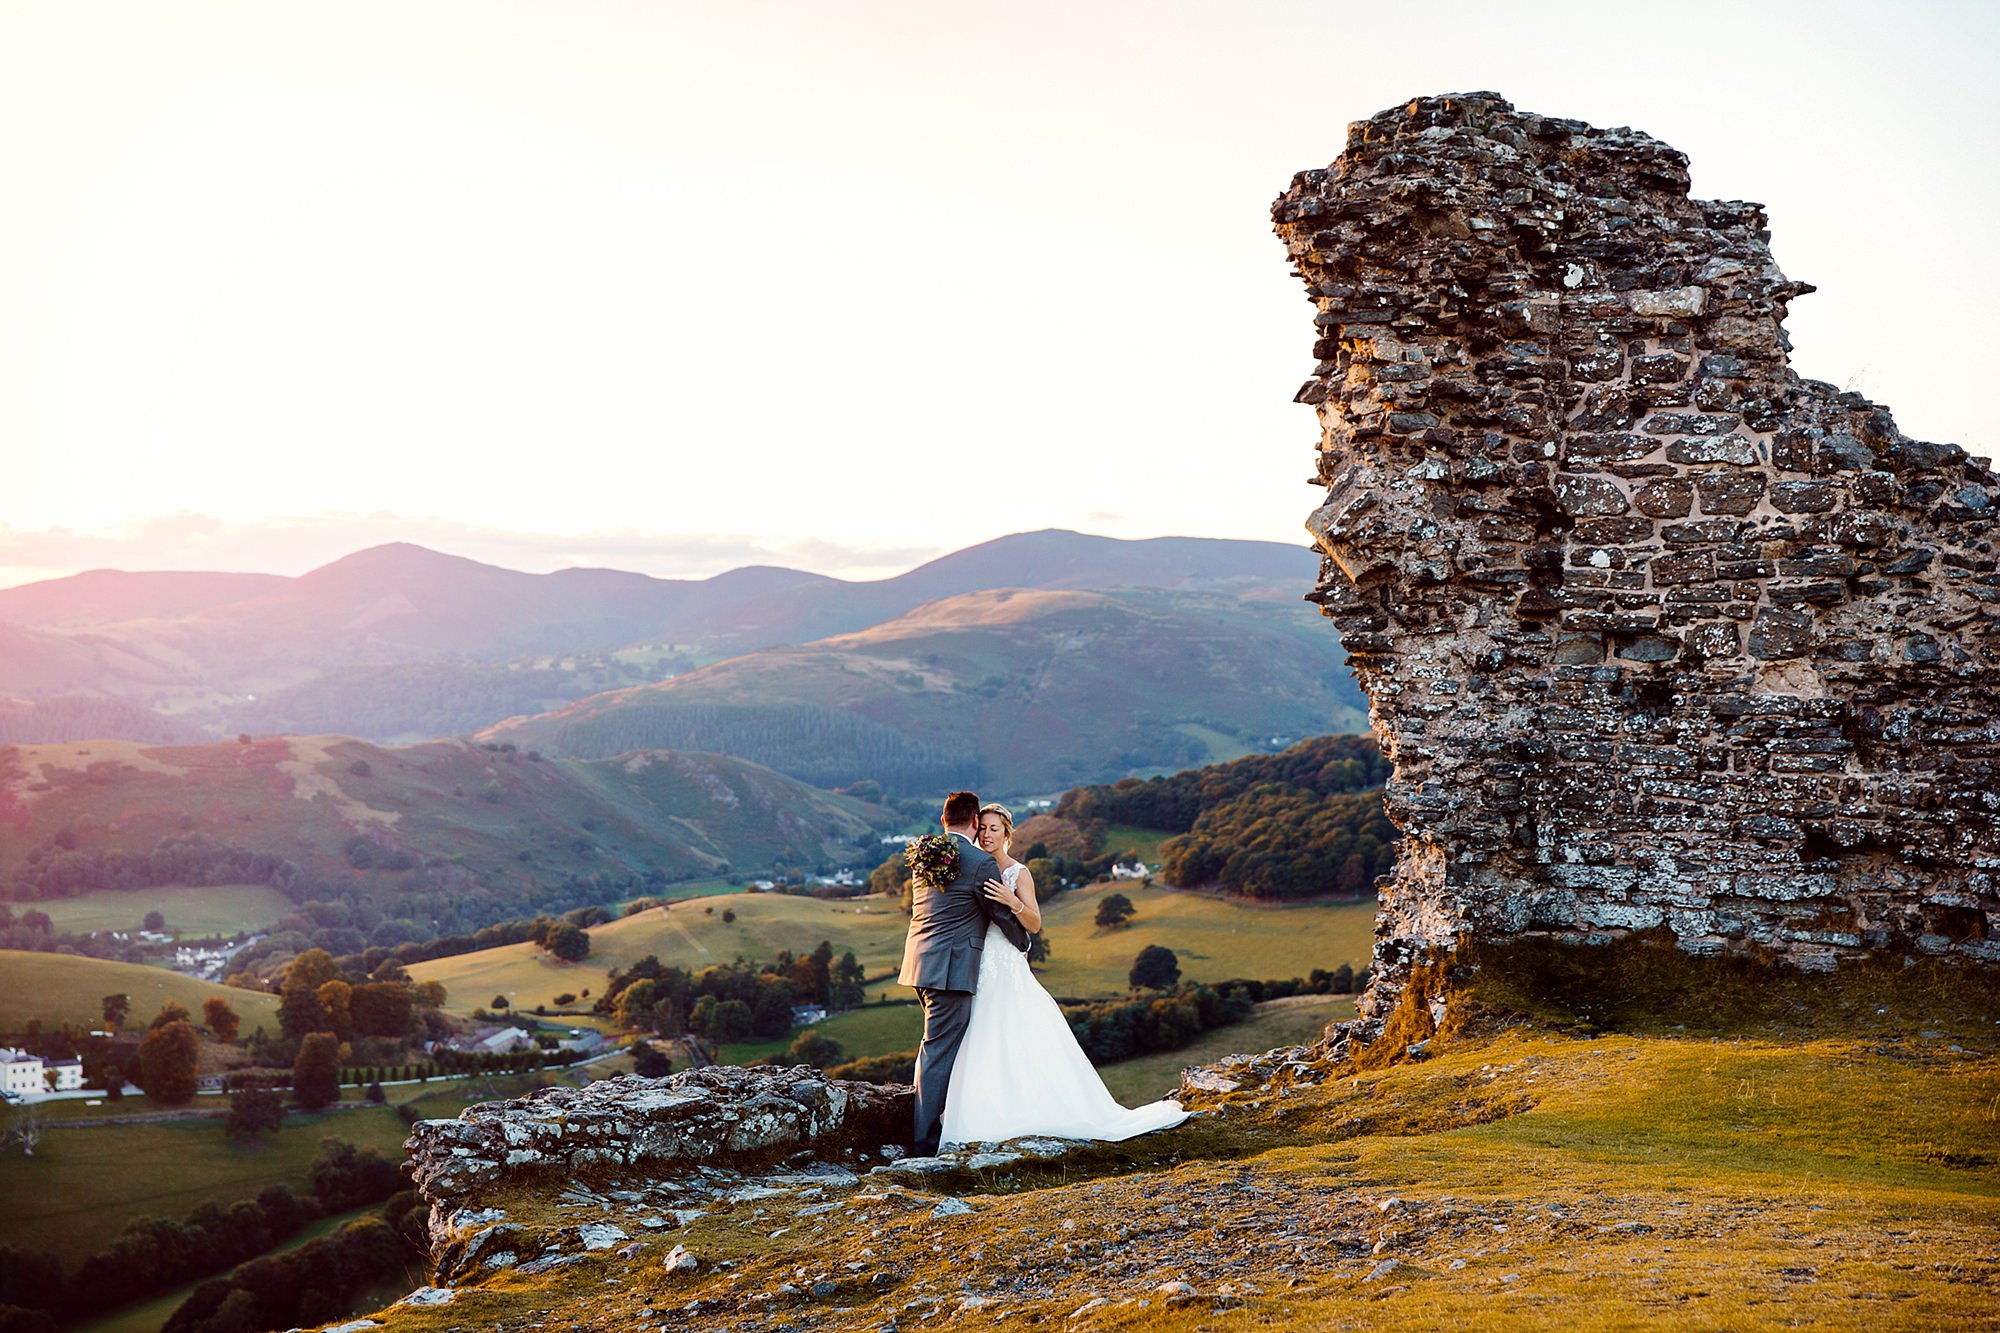 Castell dinas bran wedding photography a bride and groom embrace each other at castle ruins